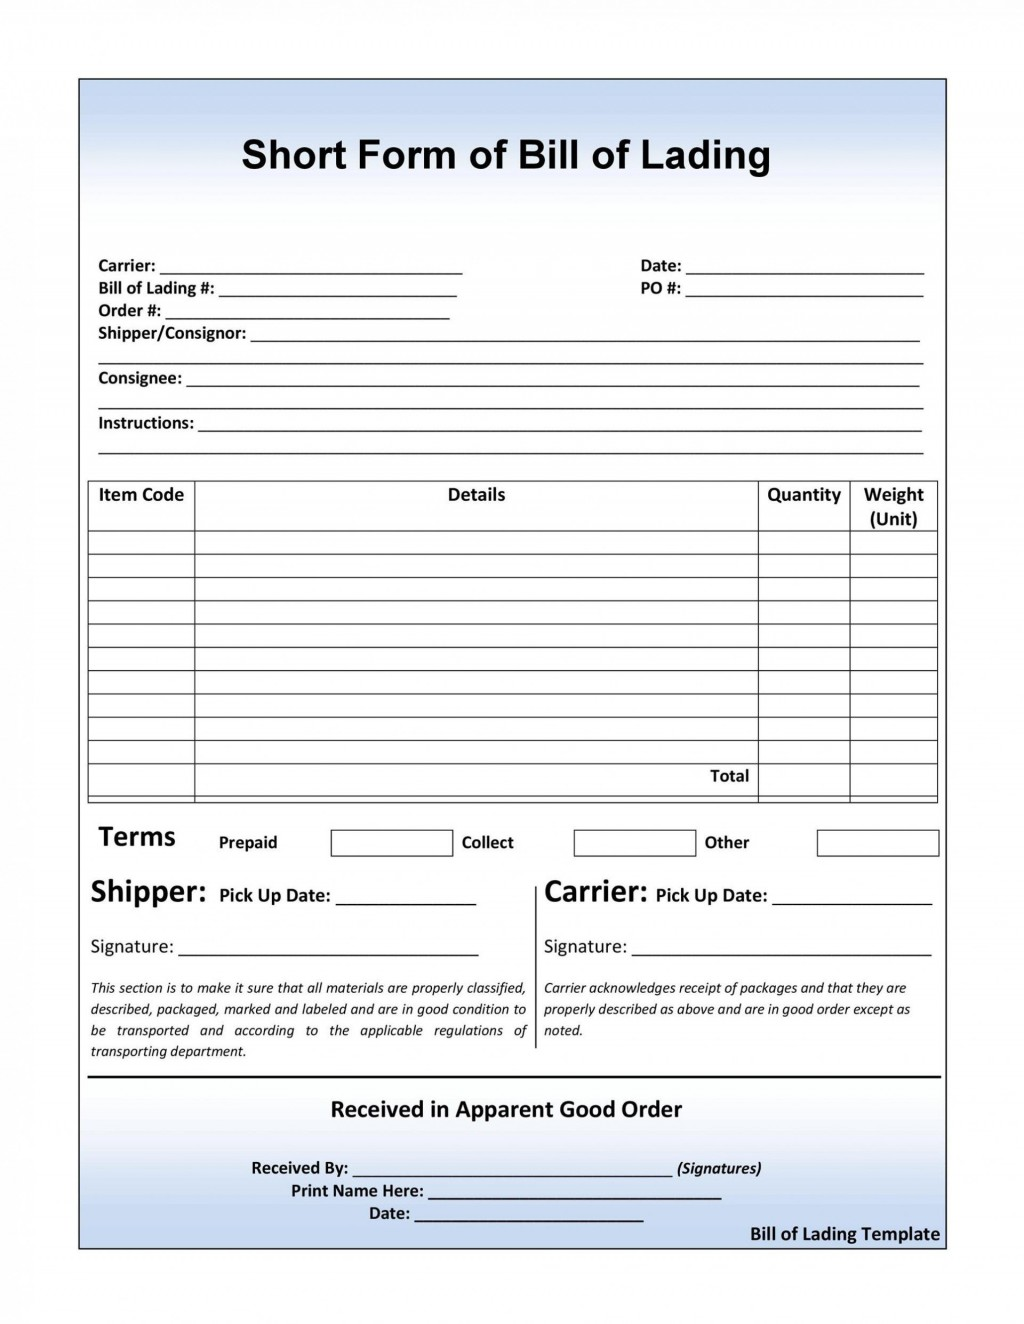 003 Exceptional Bill Of Lading Template Microsoft Word Image Large